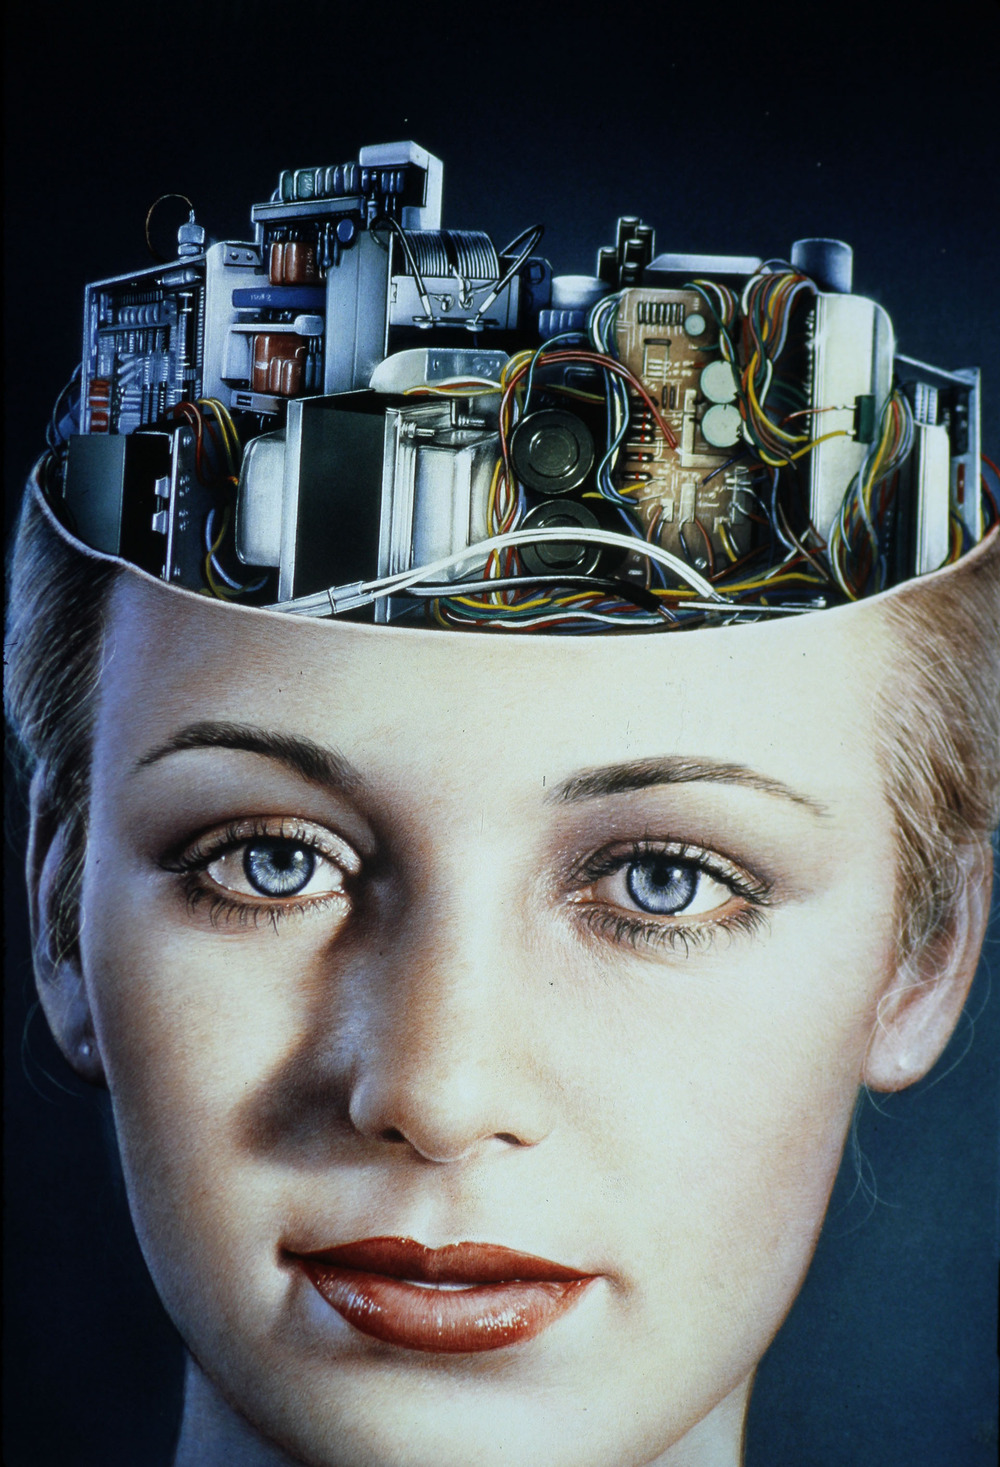 Robot Evolution, November 1981 Gottfried Helnwein